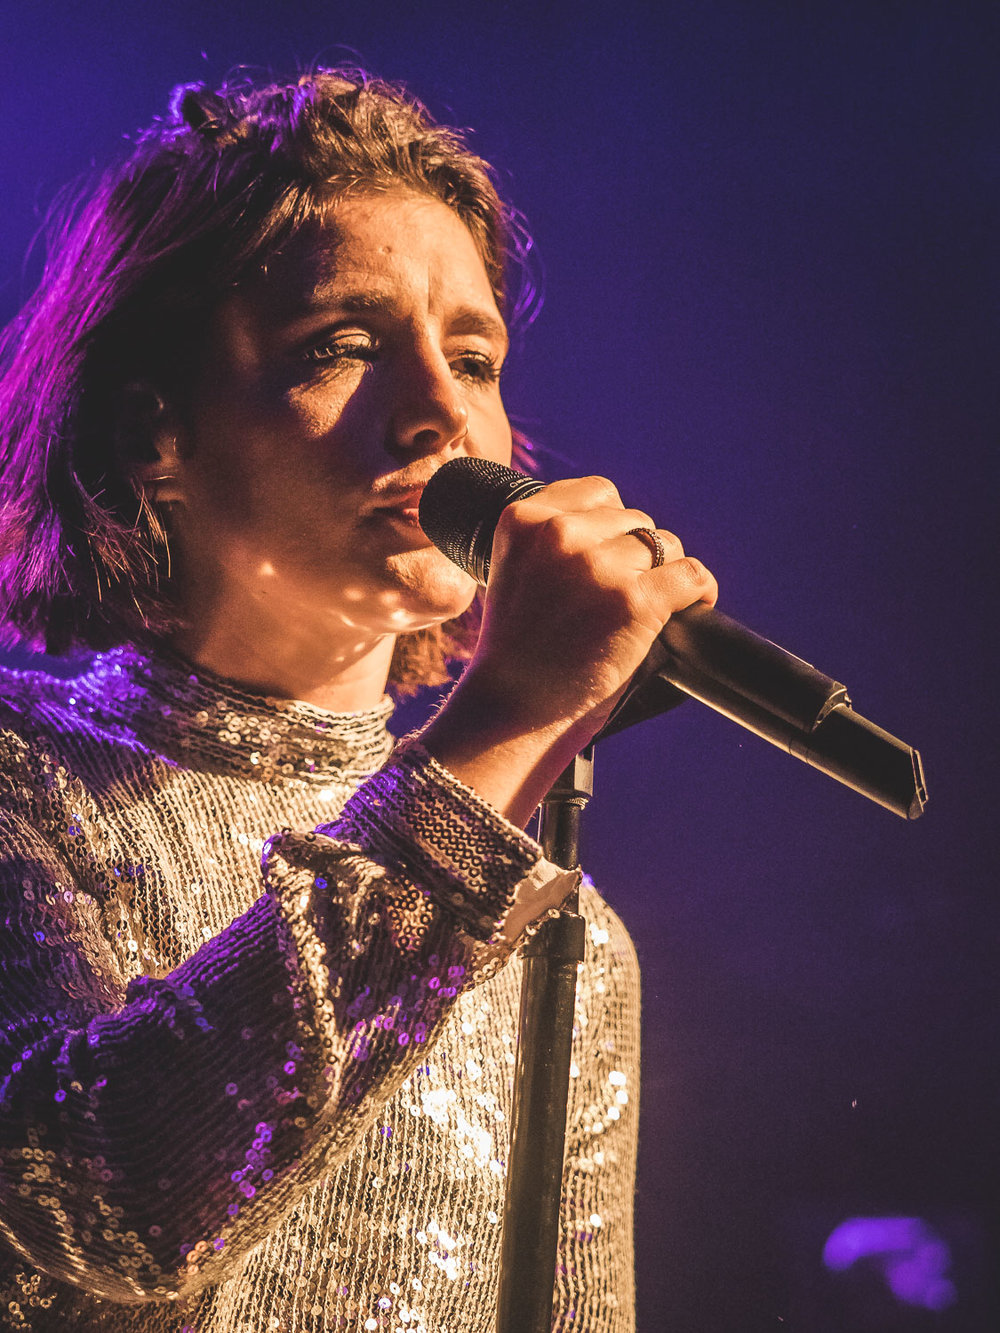 jessie_ware_110117_the_independent-1.jpg